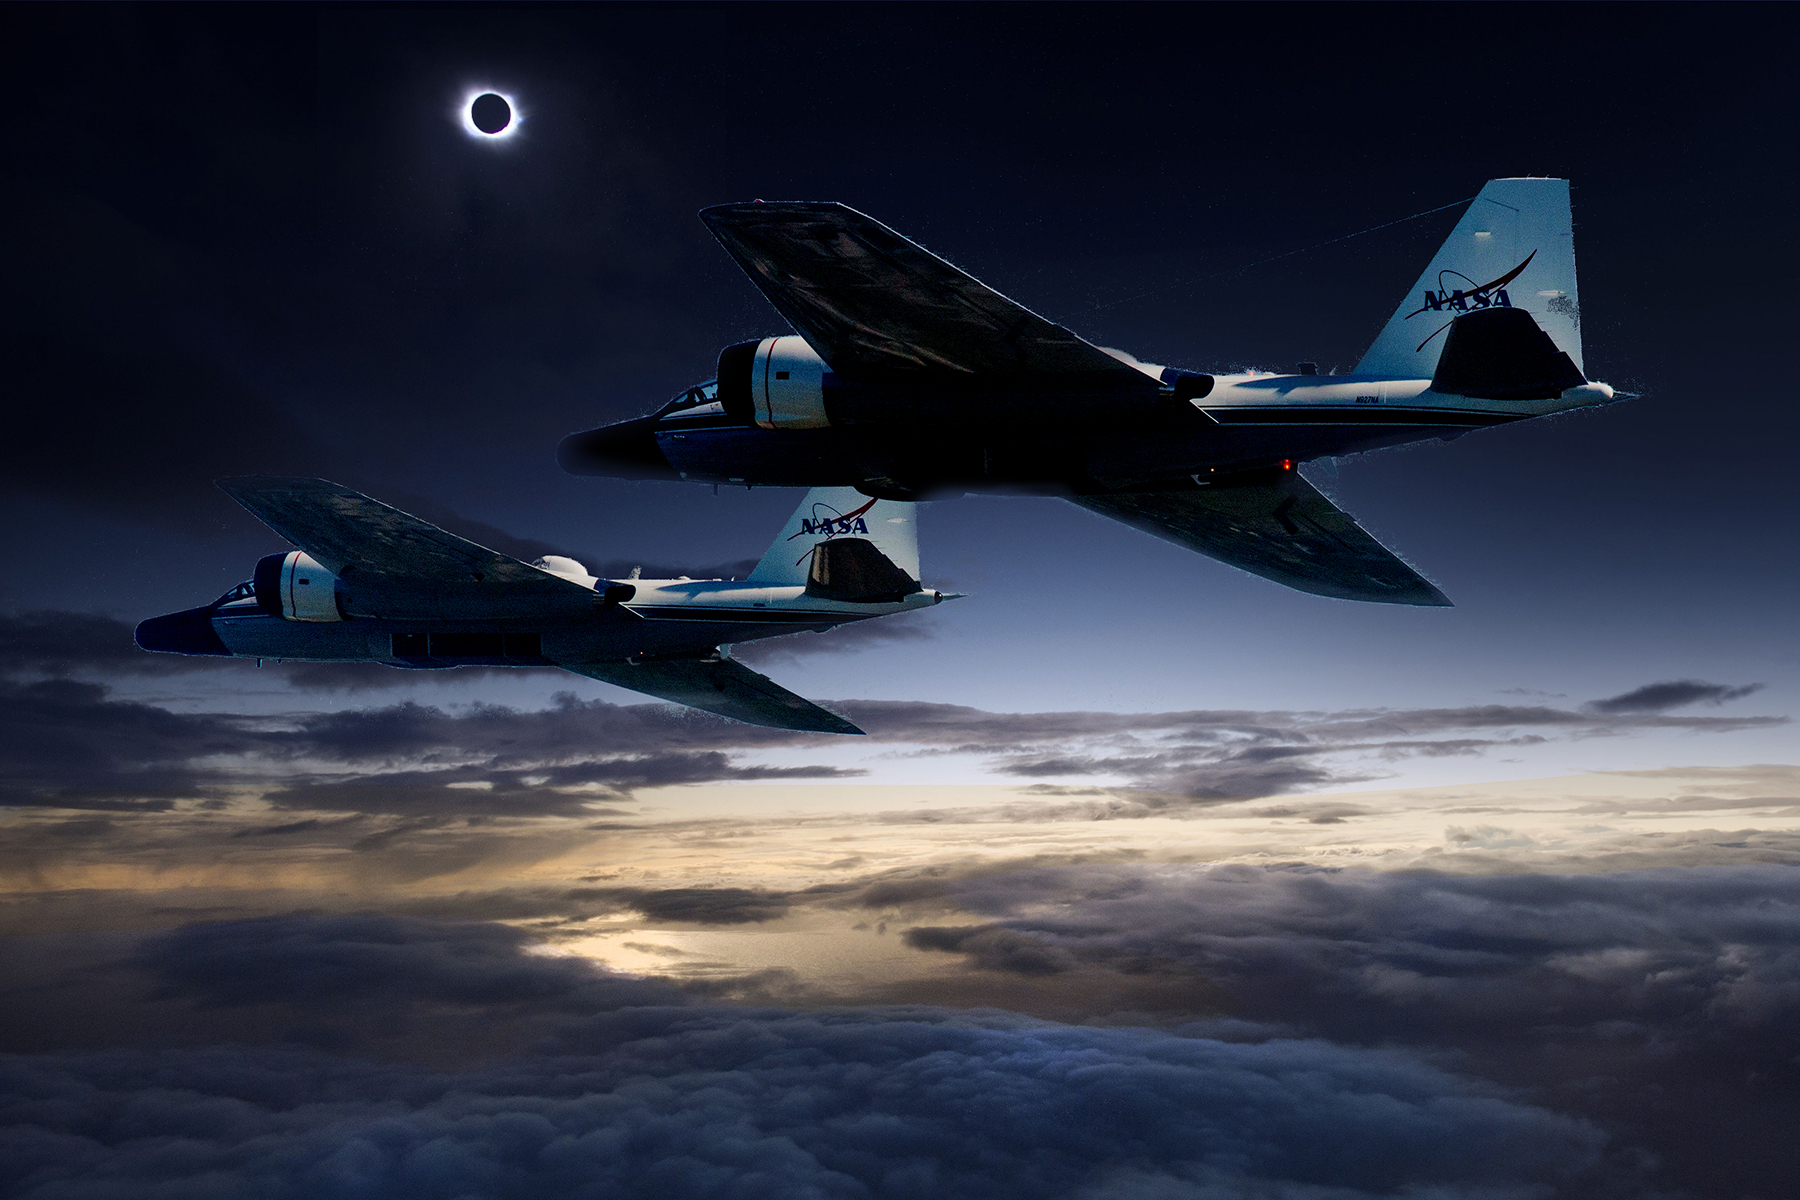 Composite Image Of Wb57f Planes And A Solar Eclipse